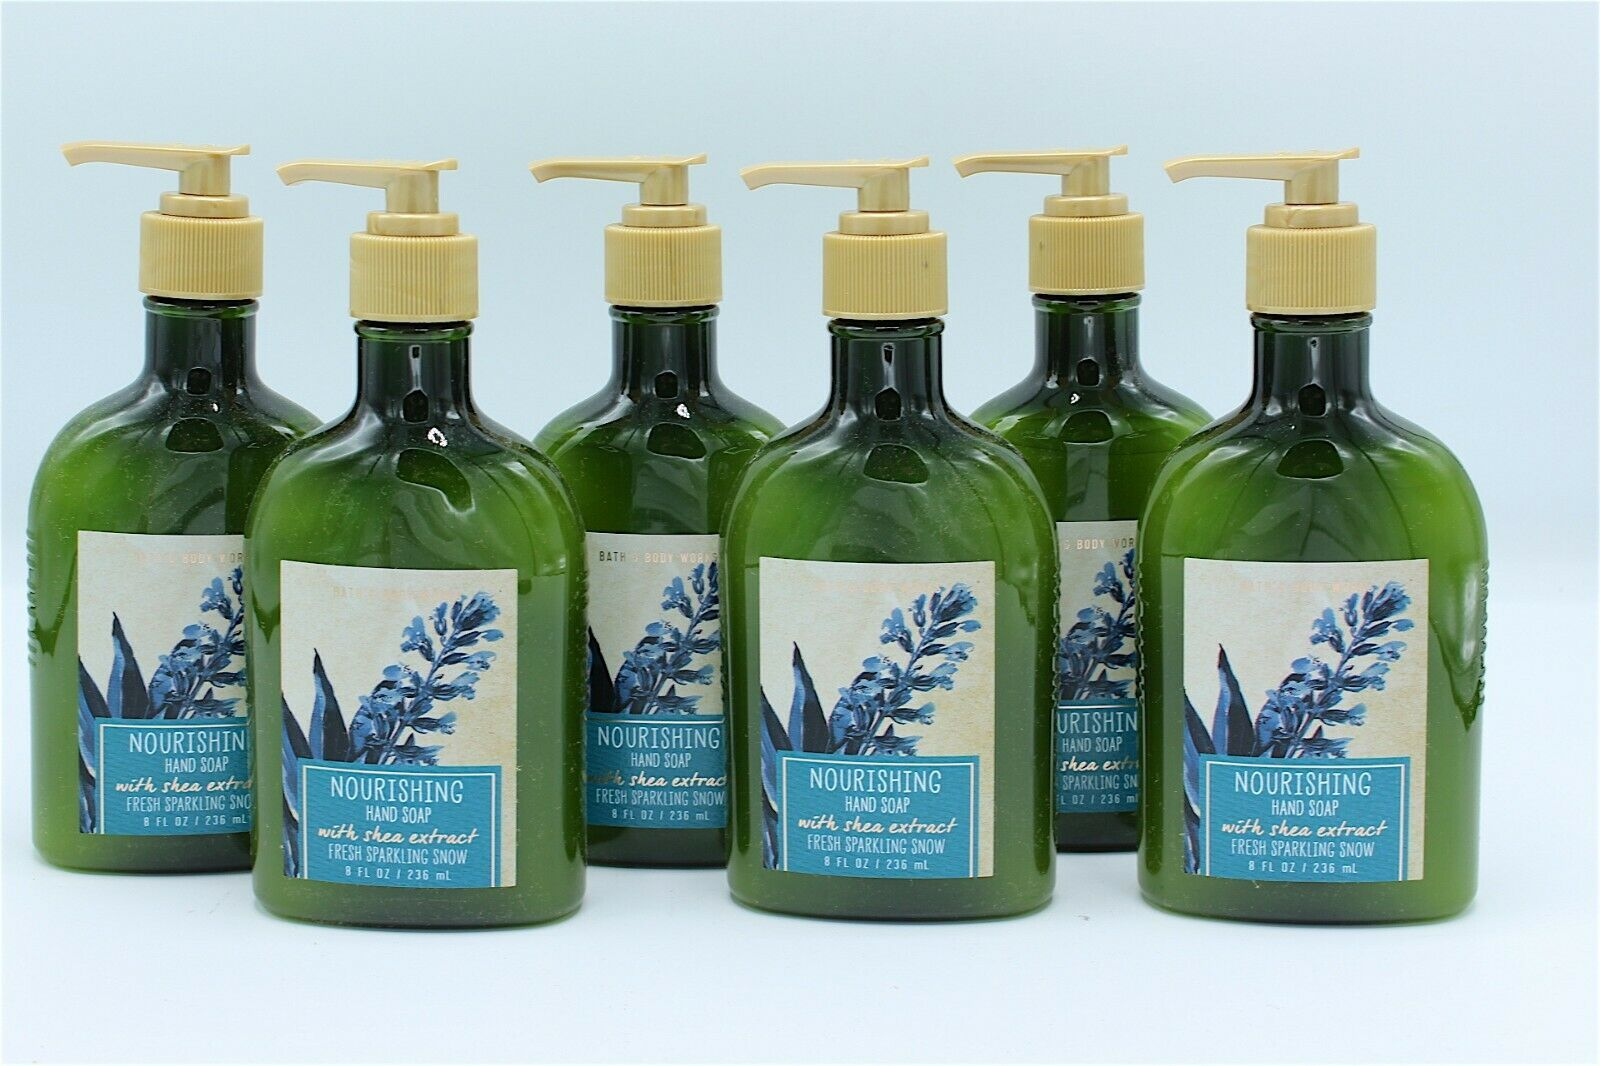 x6 Bath & Body Works Fresh Sparkling Snow Nourishing Hand Soap with Shea Extract